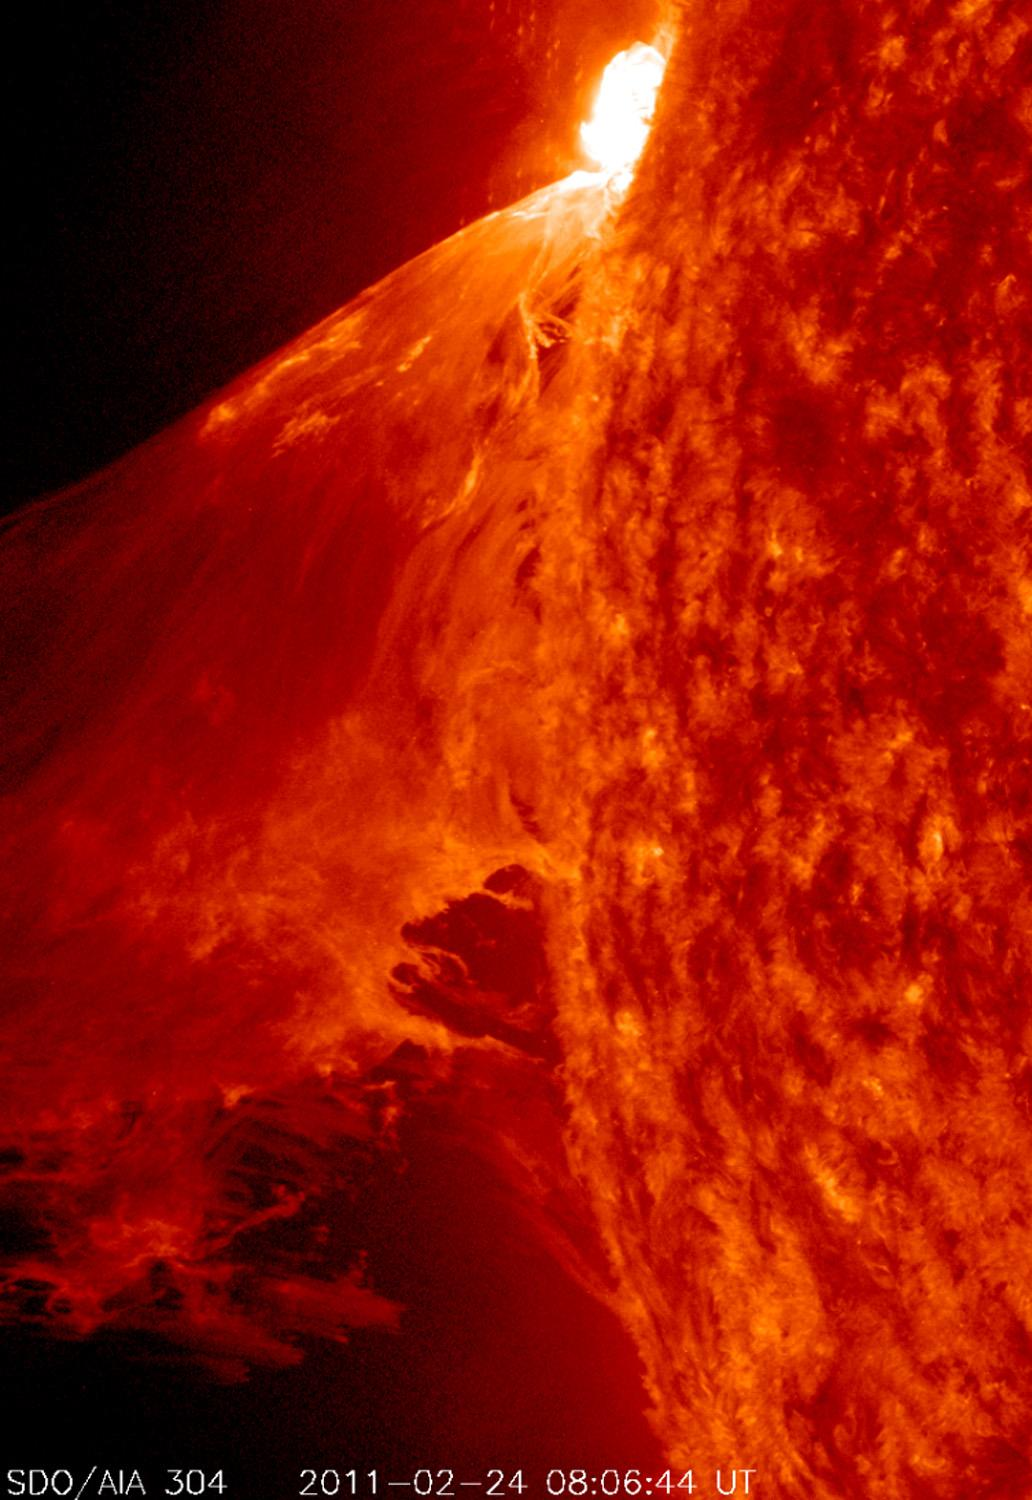 A rather large M 3.6–class flare occurred near the edge of the sun on Feb. 24, 2011